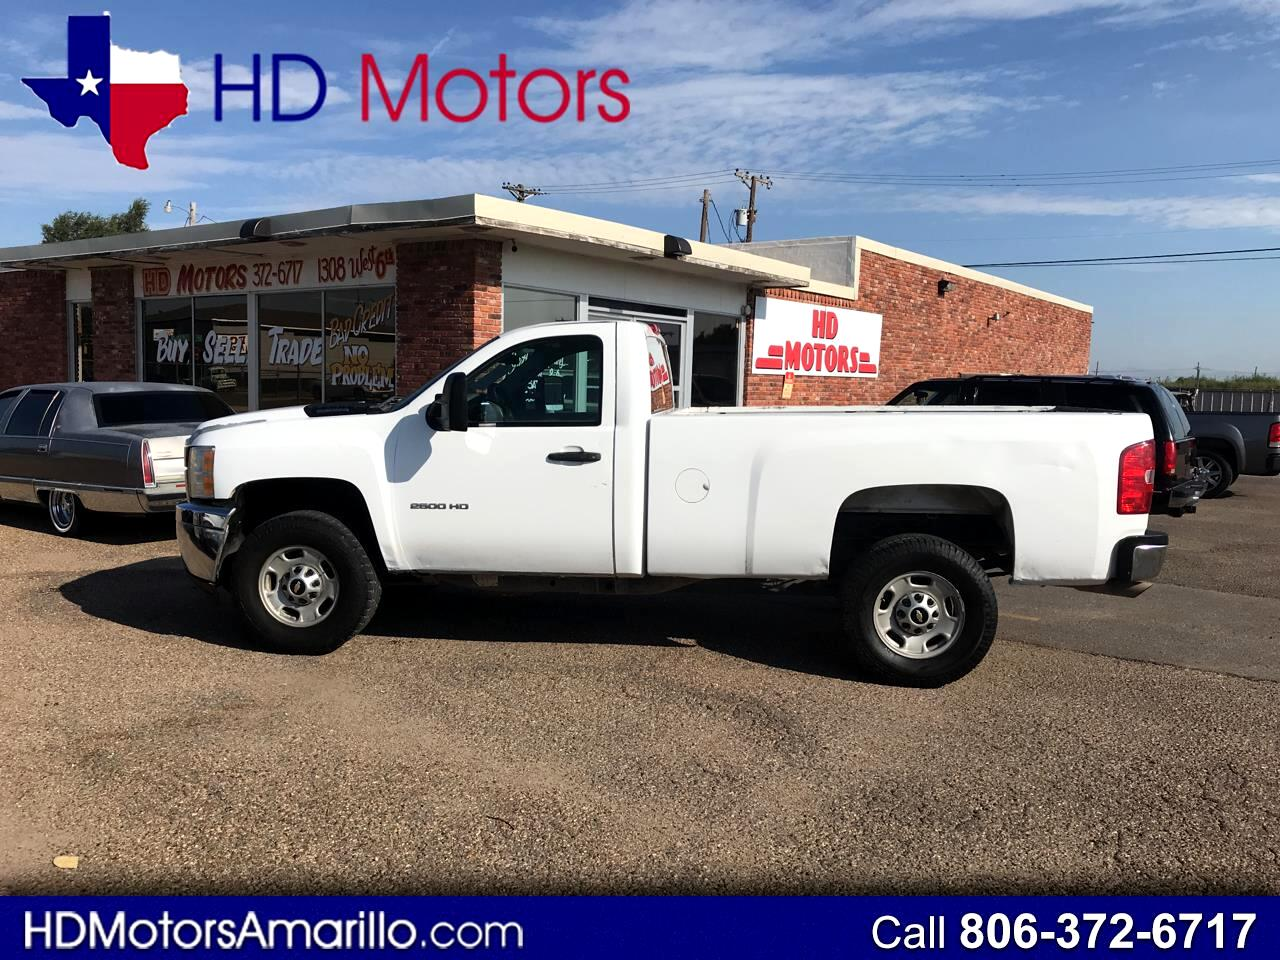 Buy Here Pay Here Cars For Sale Amarillo Tx 79101 H D Motors